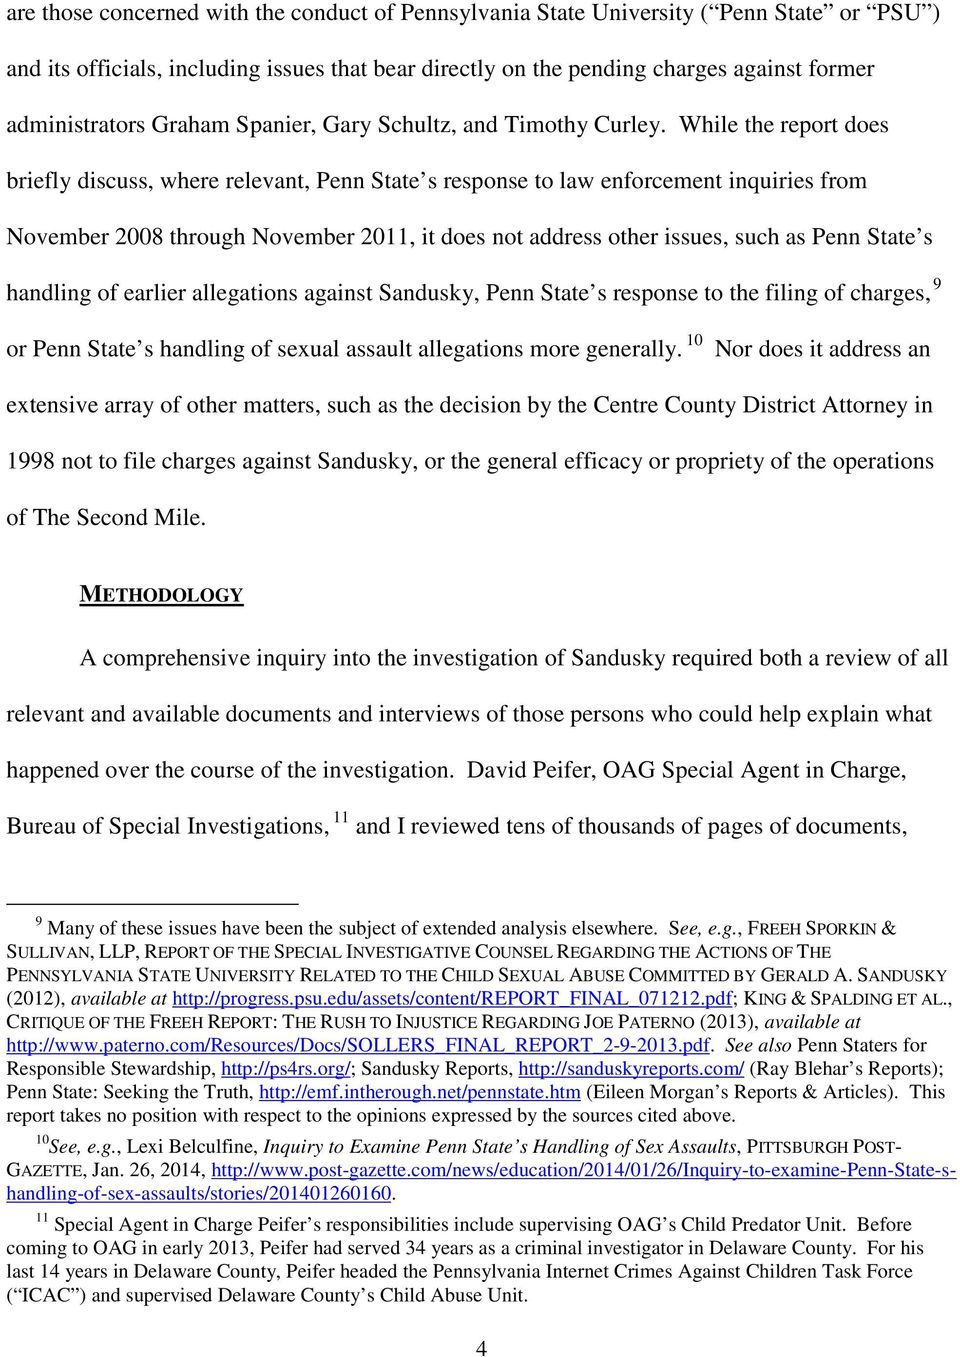 While the report does briefly discuss, where relevant, Penn State s response to law enforcement inquiries from November 2008 through November 2011, it does not address other issues, such as Penn